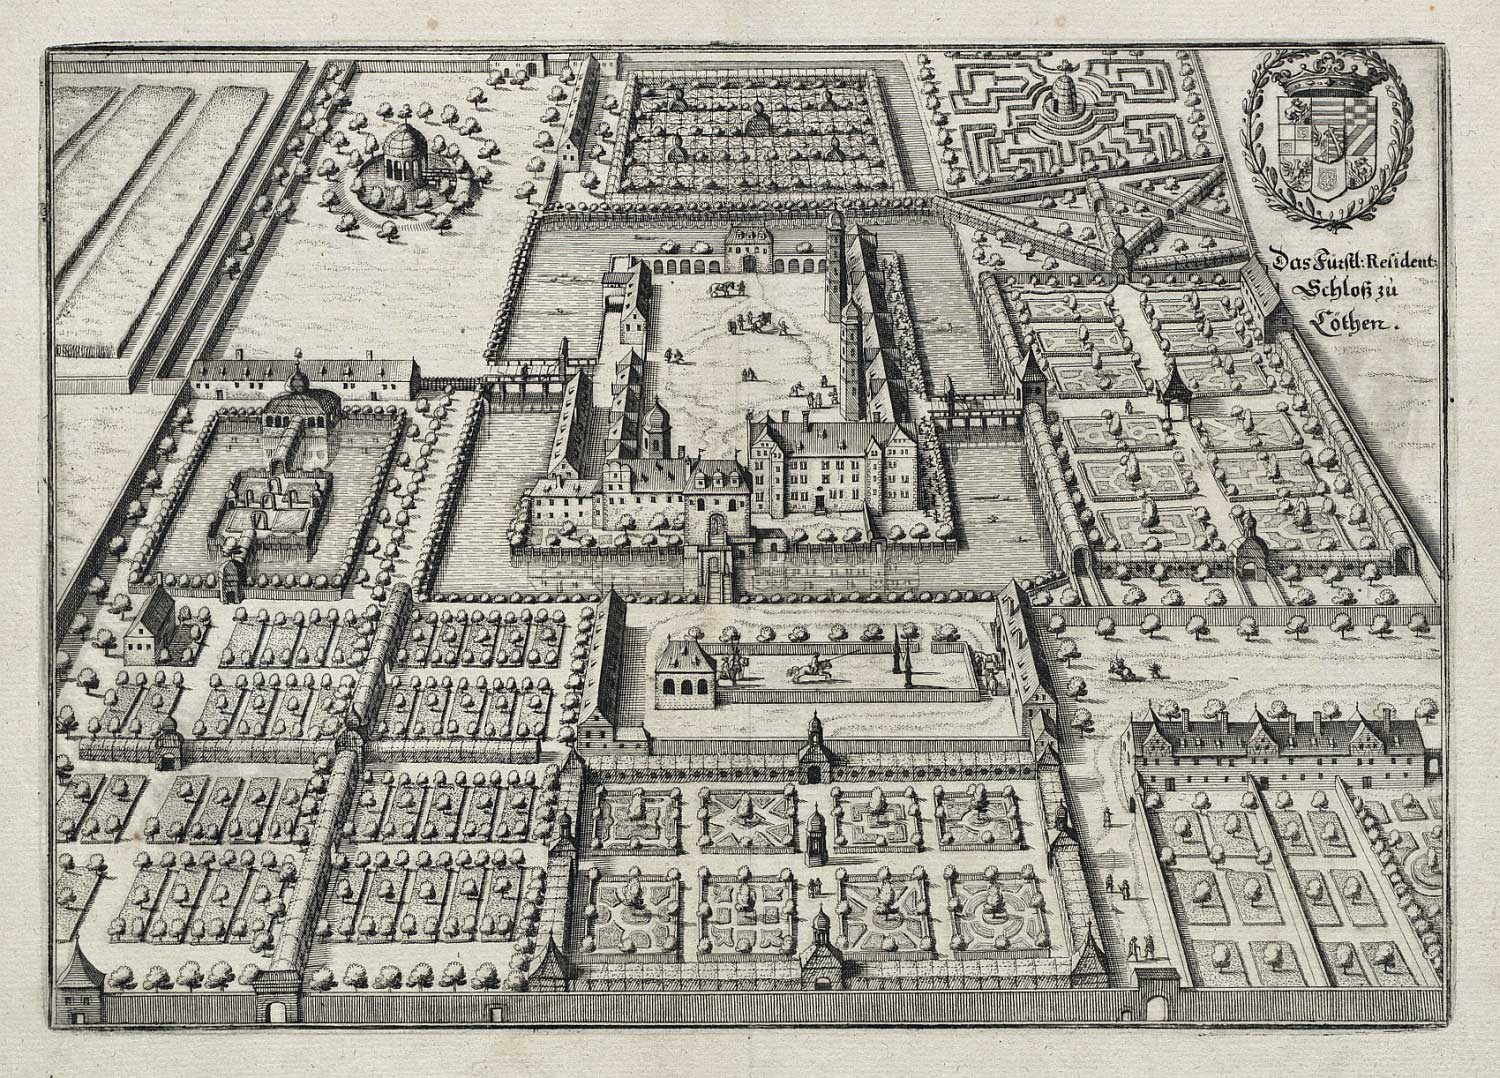 Schlossanlage Köthen, home of the princes of Köthen, around 1650 in a copper etching by Caspar Merians (Bach-Archiv Leipzig).